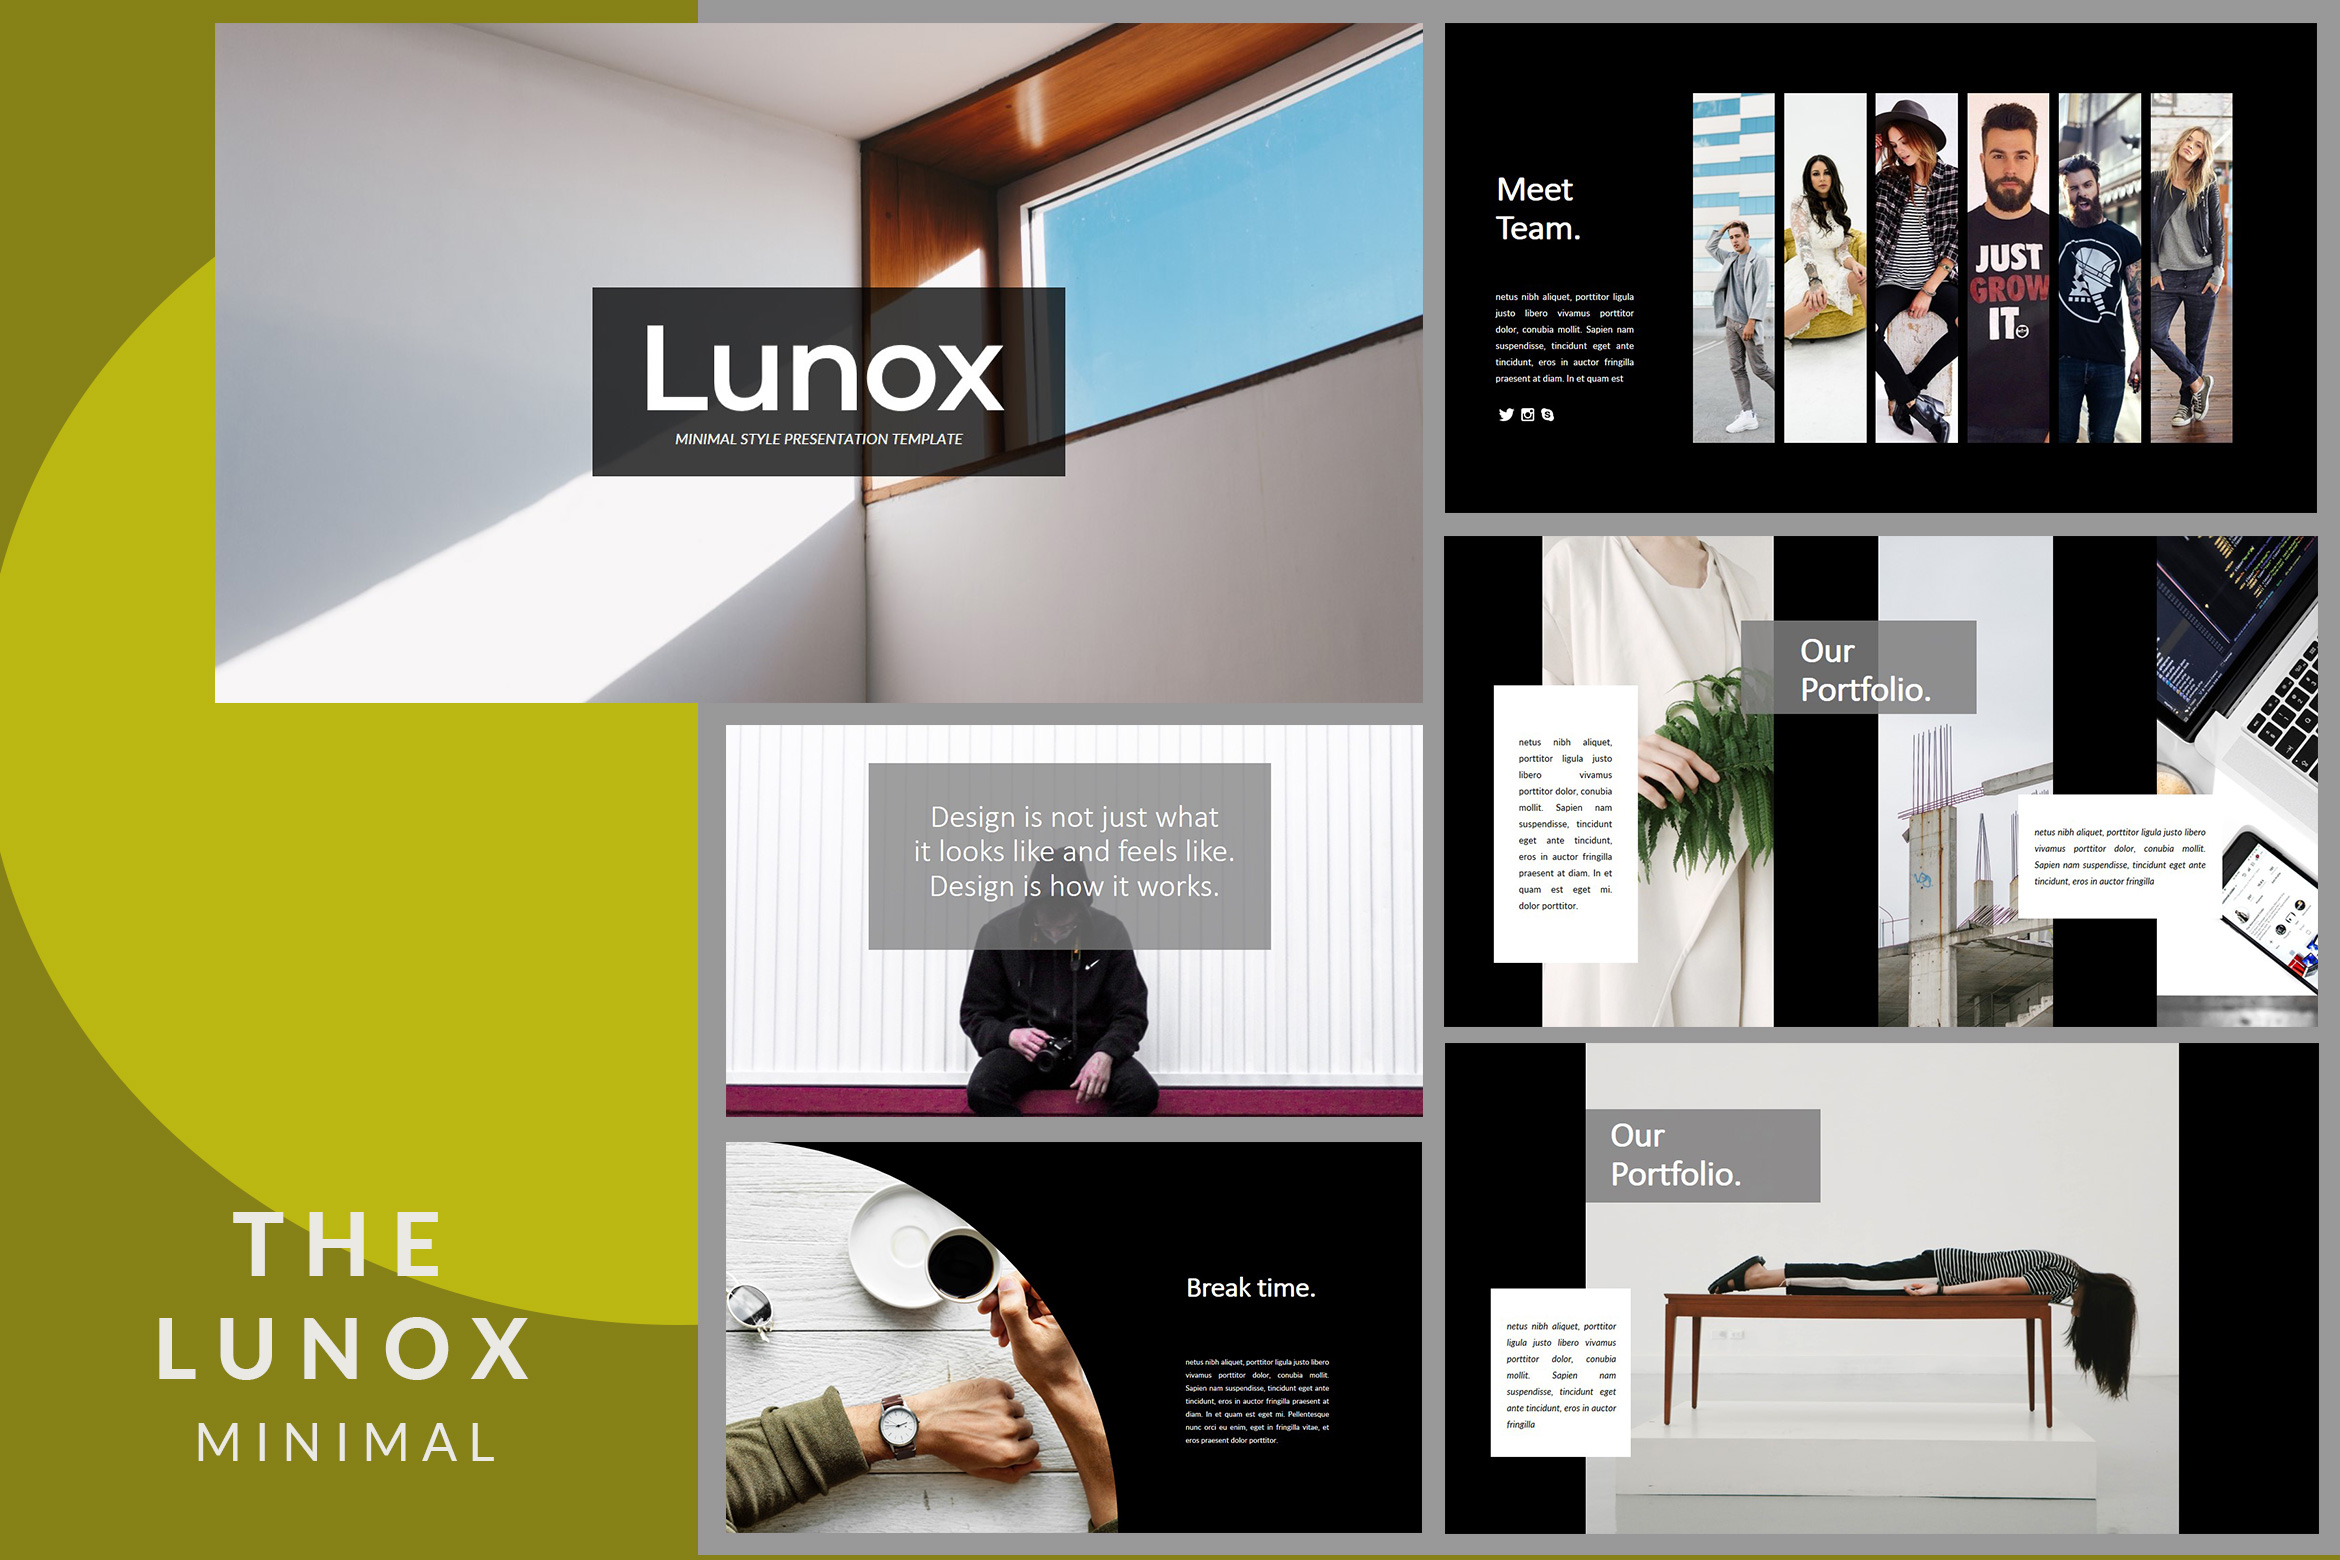 Lunox Dark - Google Slides Presentation example image 2